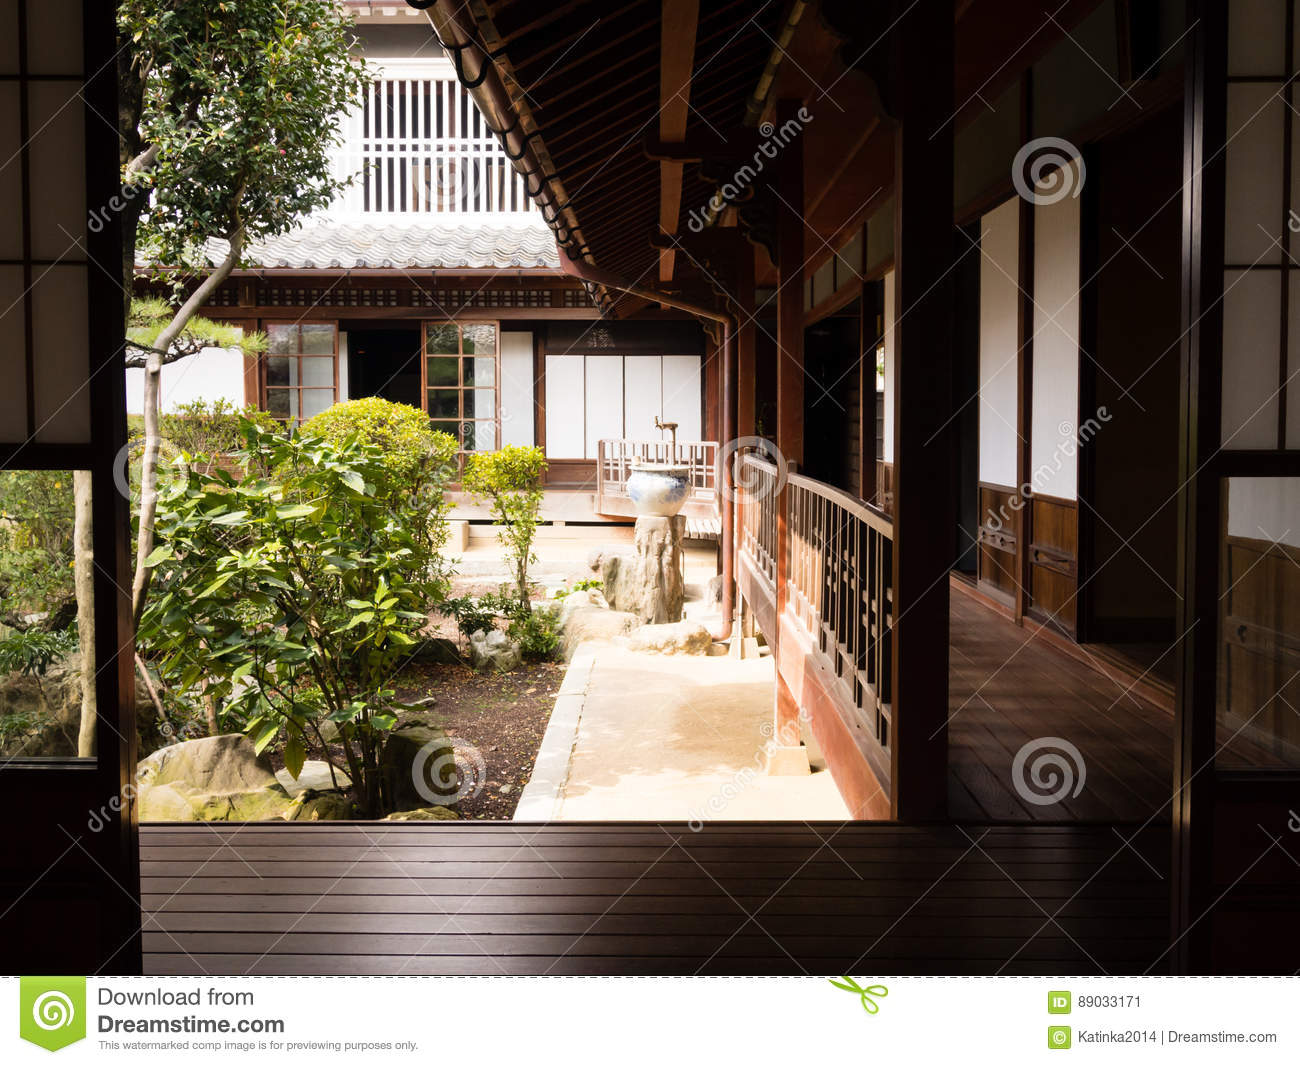 download maison japonaise traditionnelle avec le jardin intrieur photo ditorial image du traditionnel construction